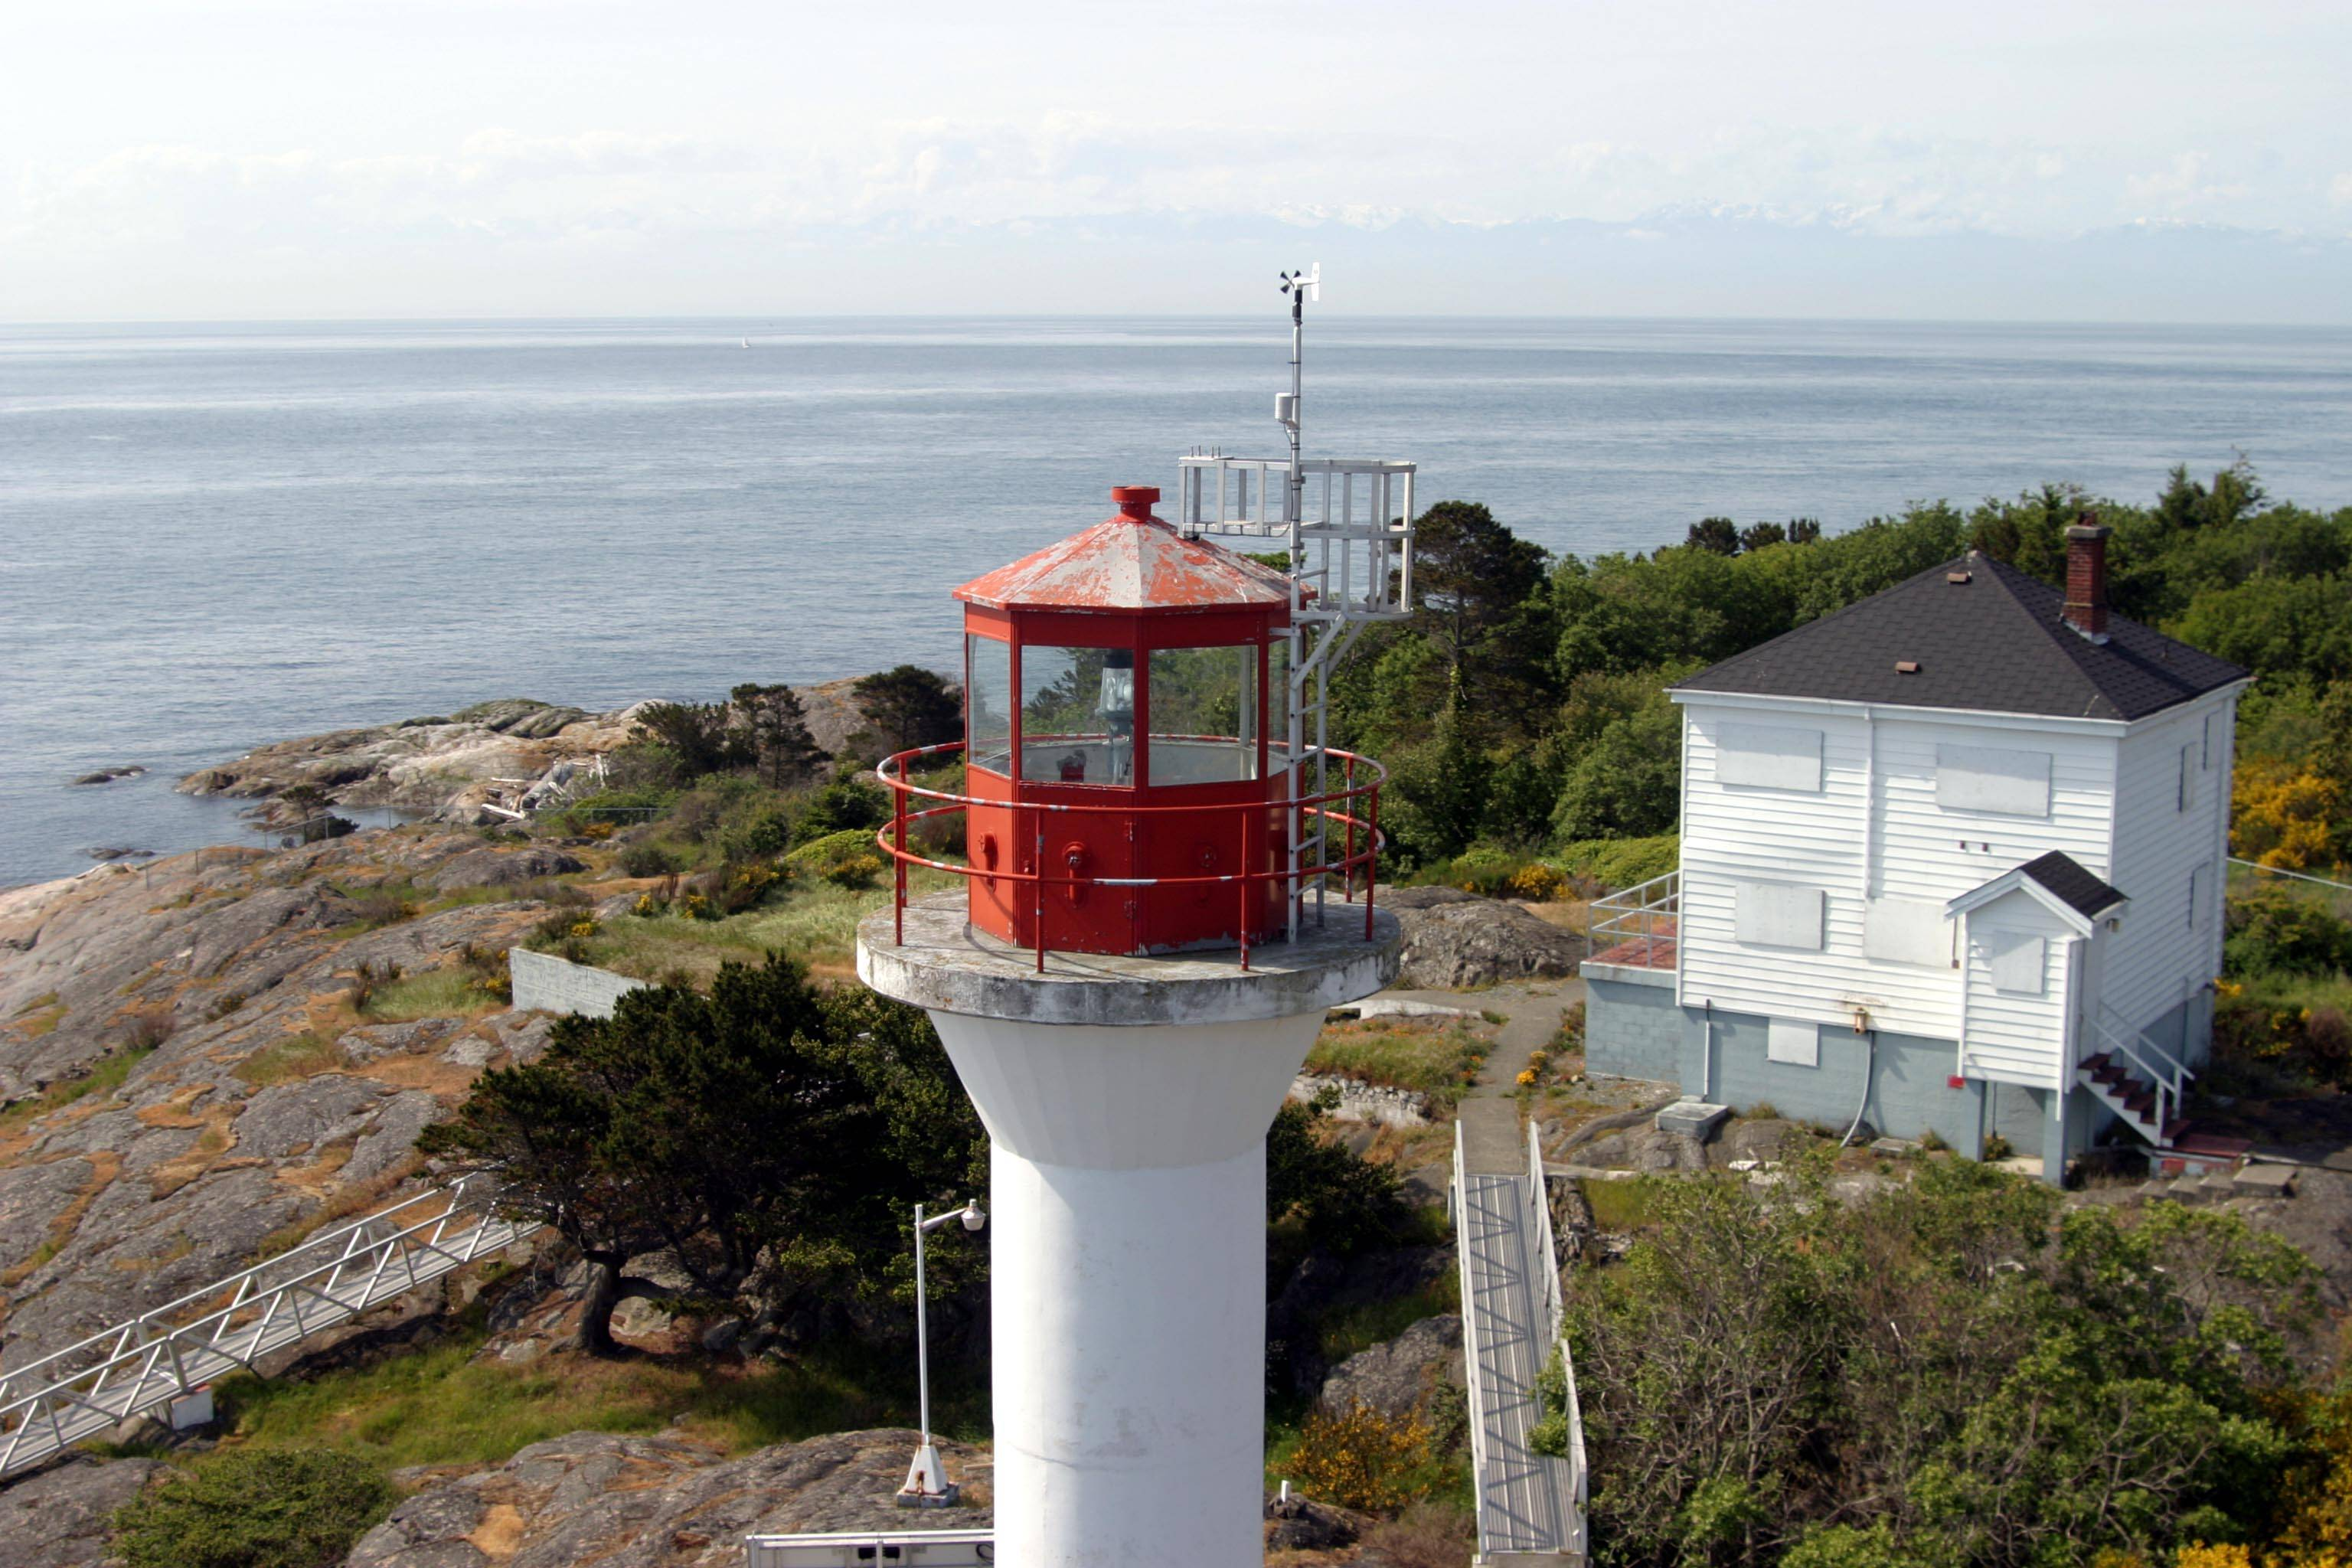 Discovery Island lighthouse from a CG. helicopter.